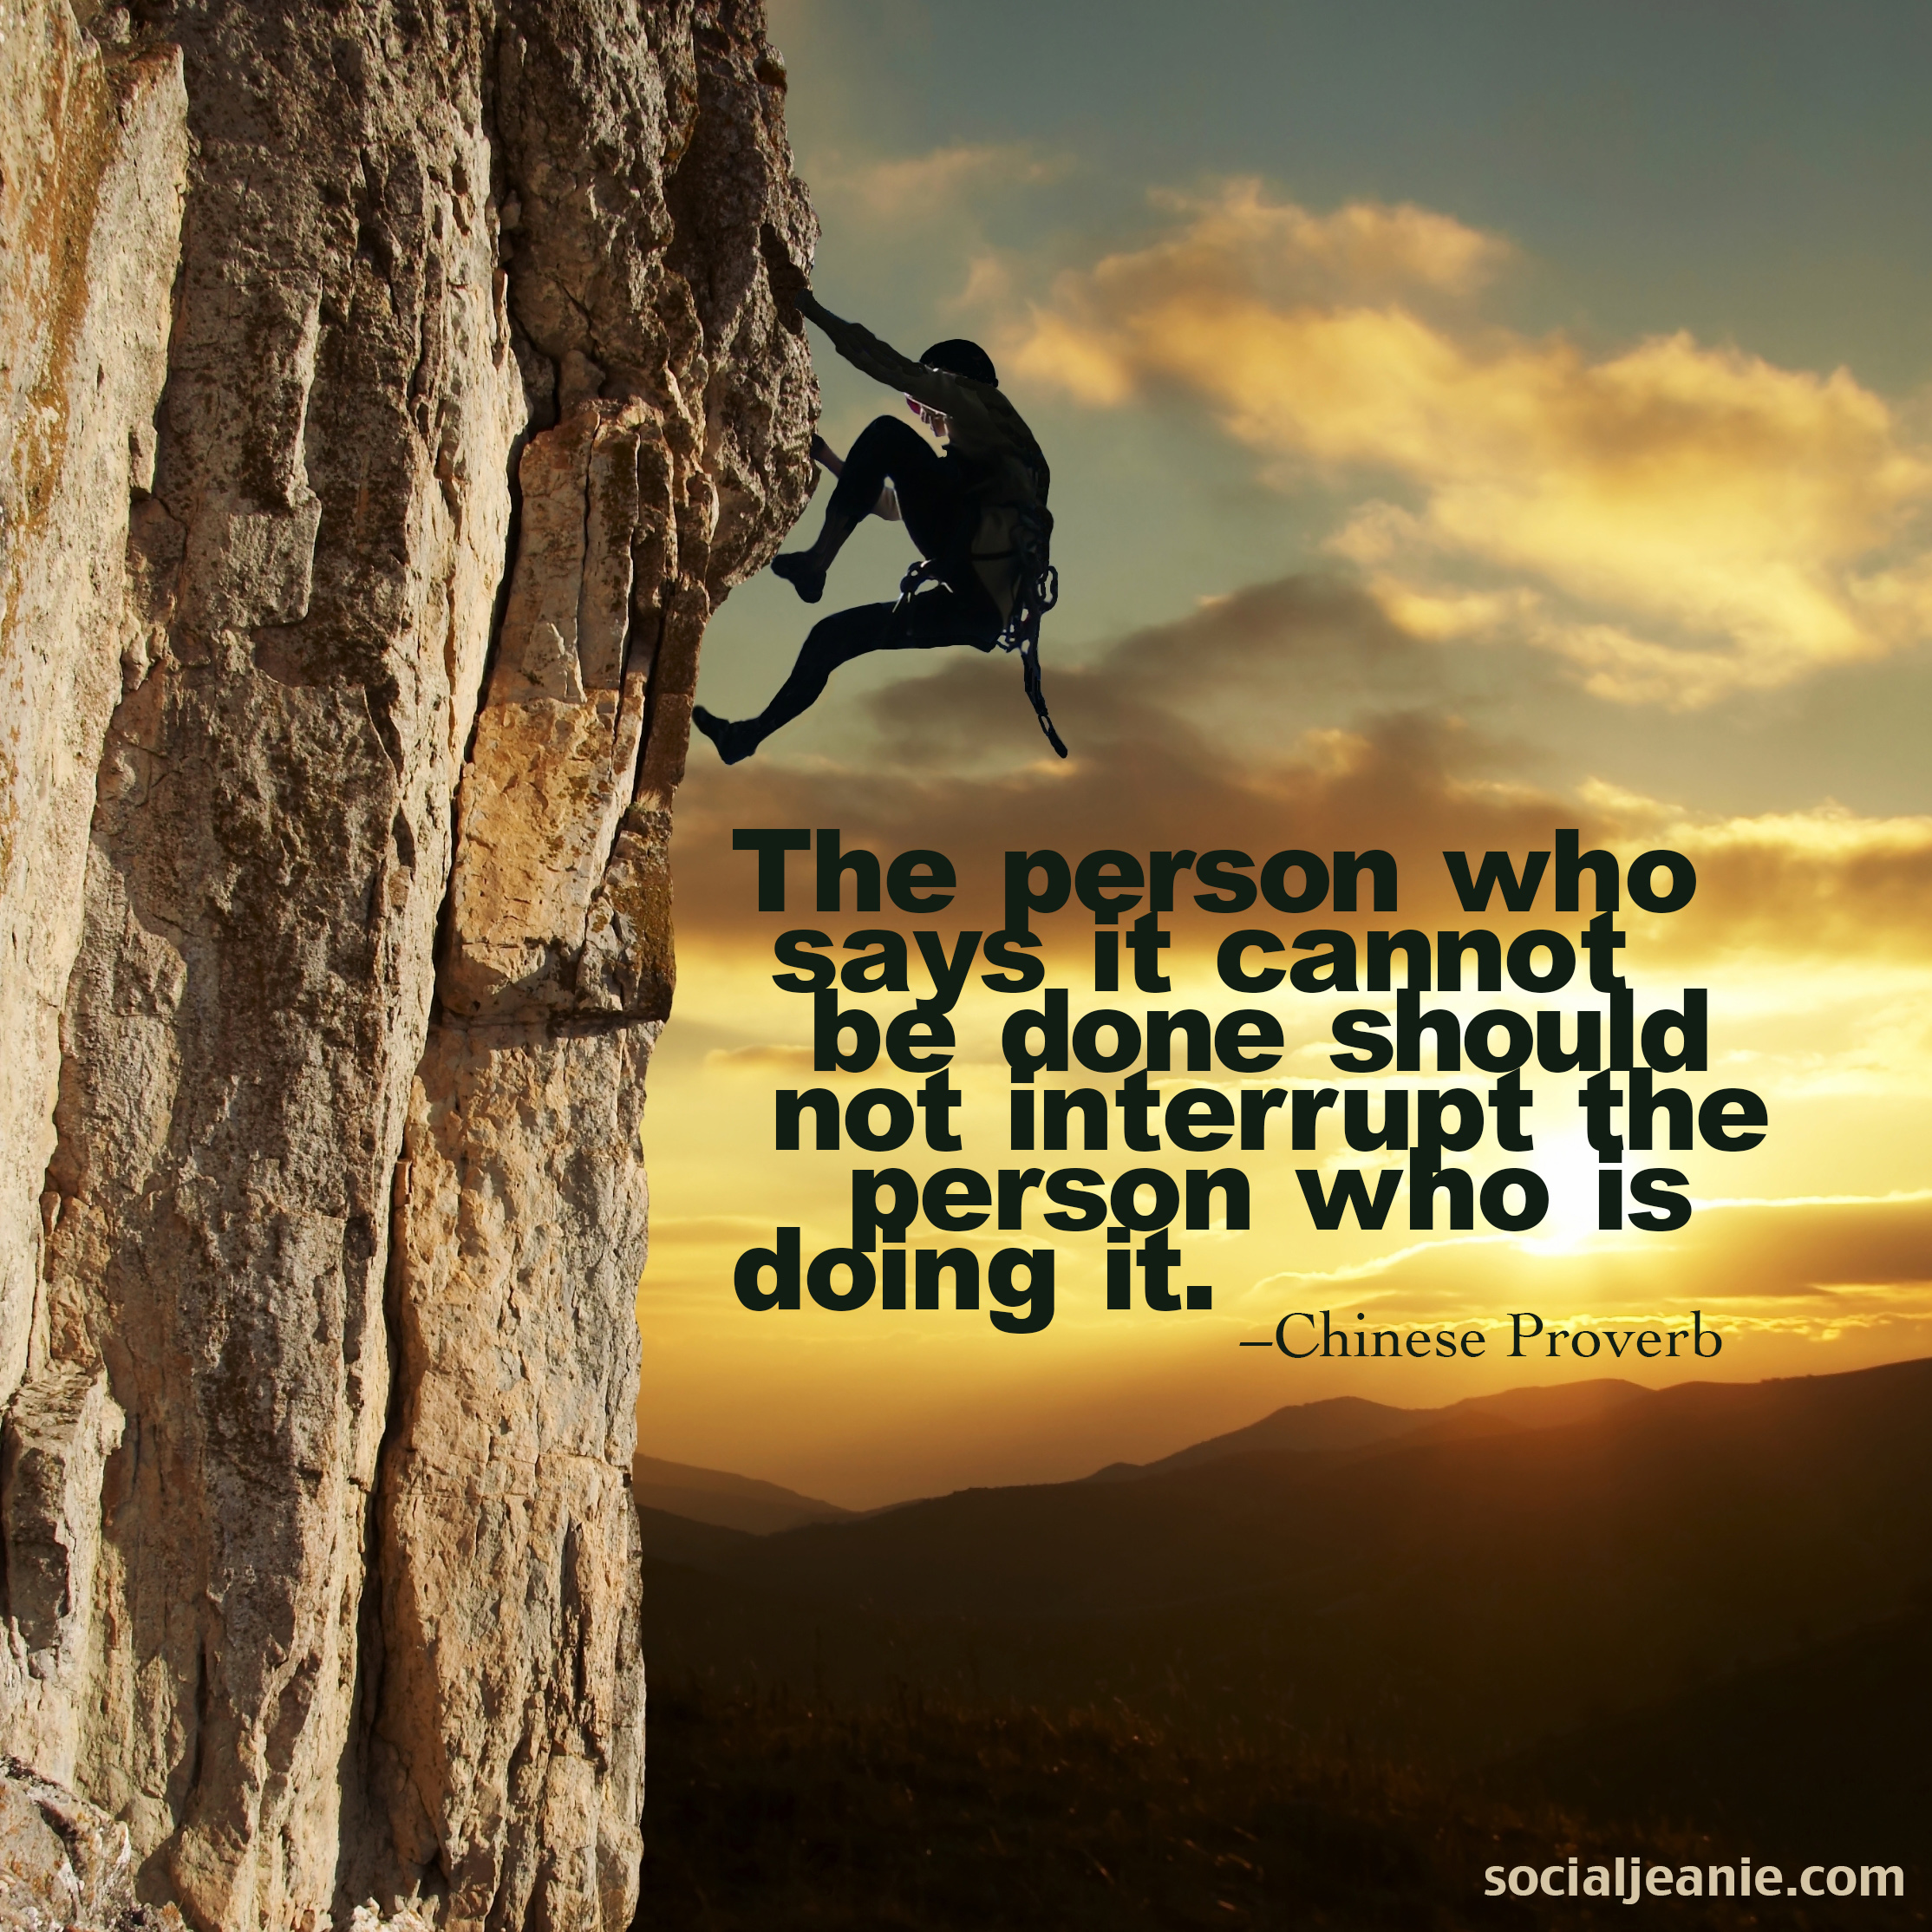 Inspirational Quotes About You: You Rock Inspirational Quotes. QuotesGram